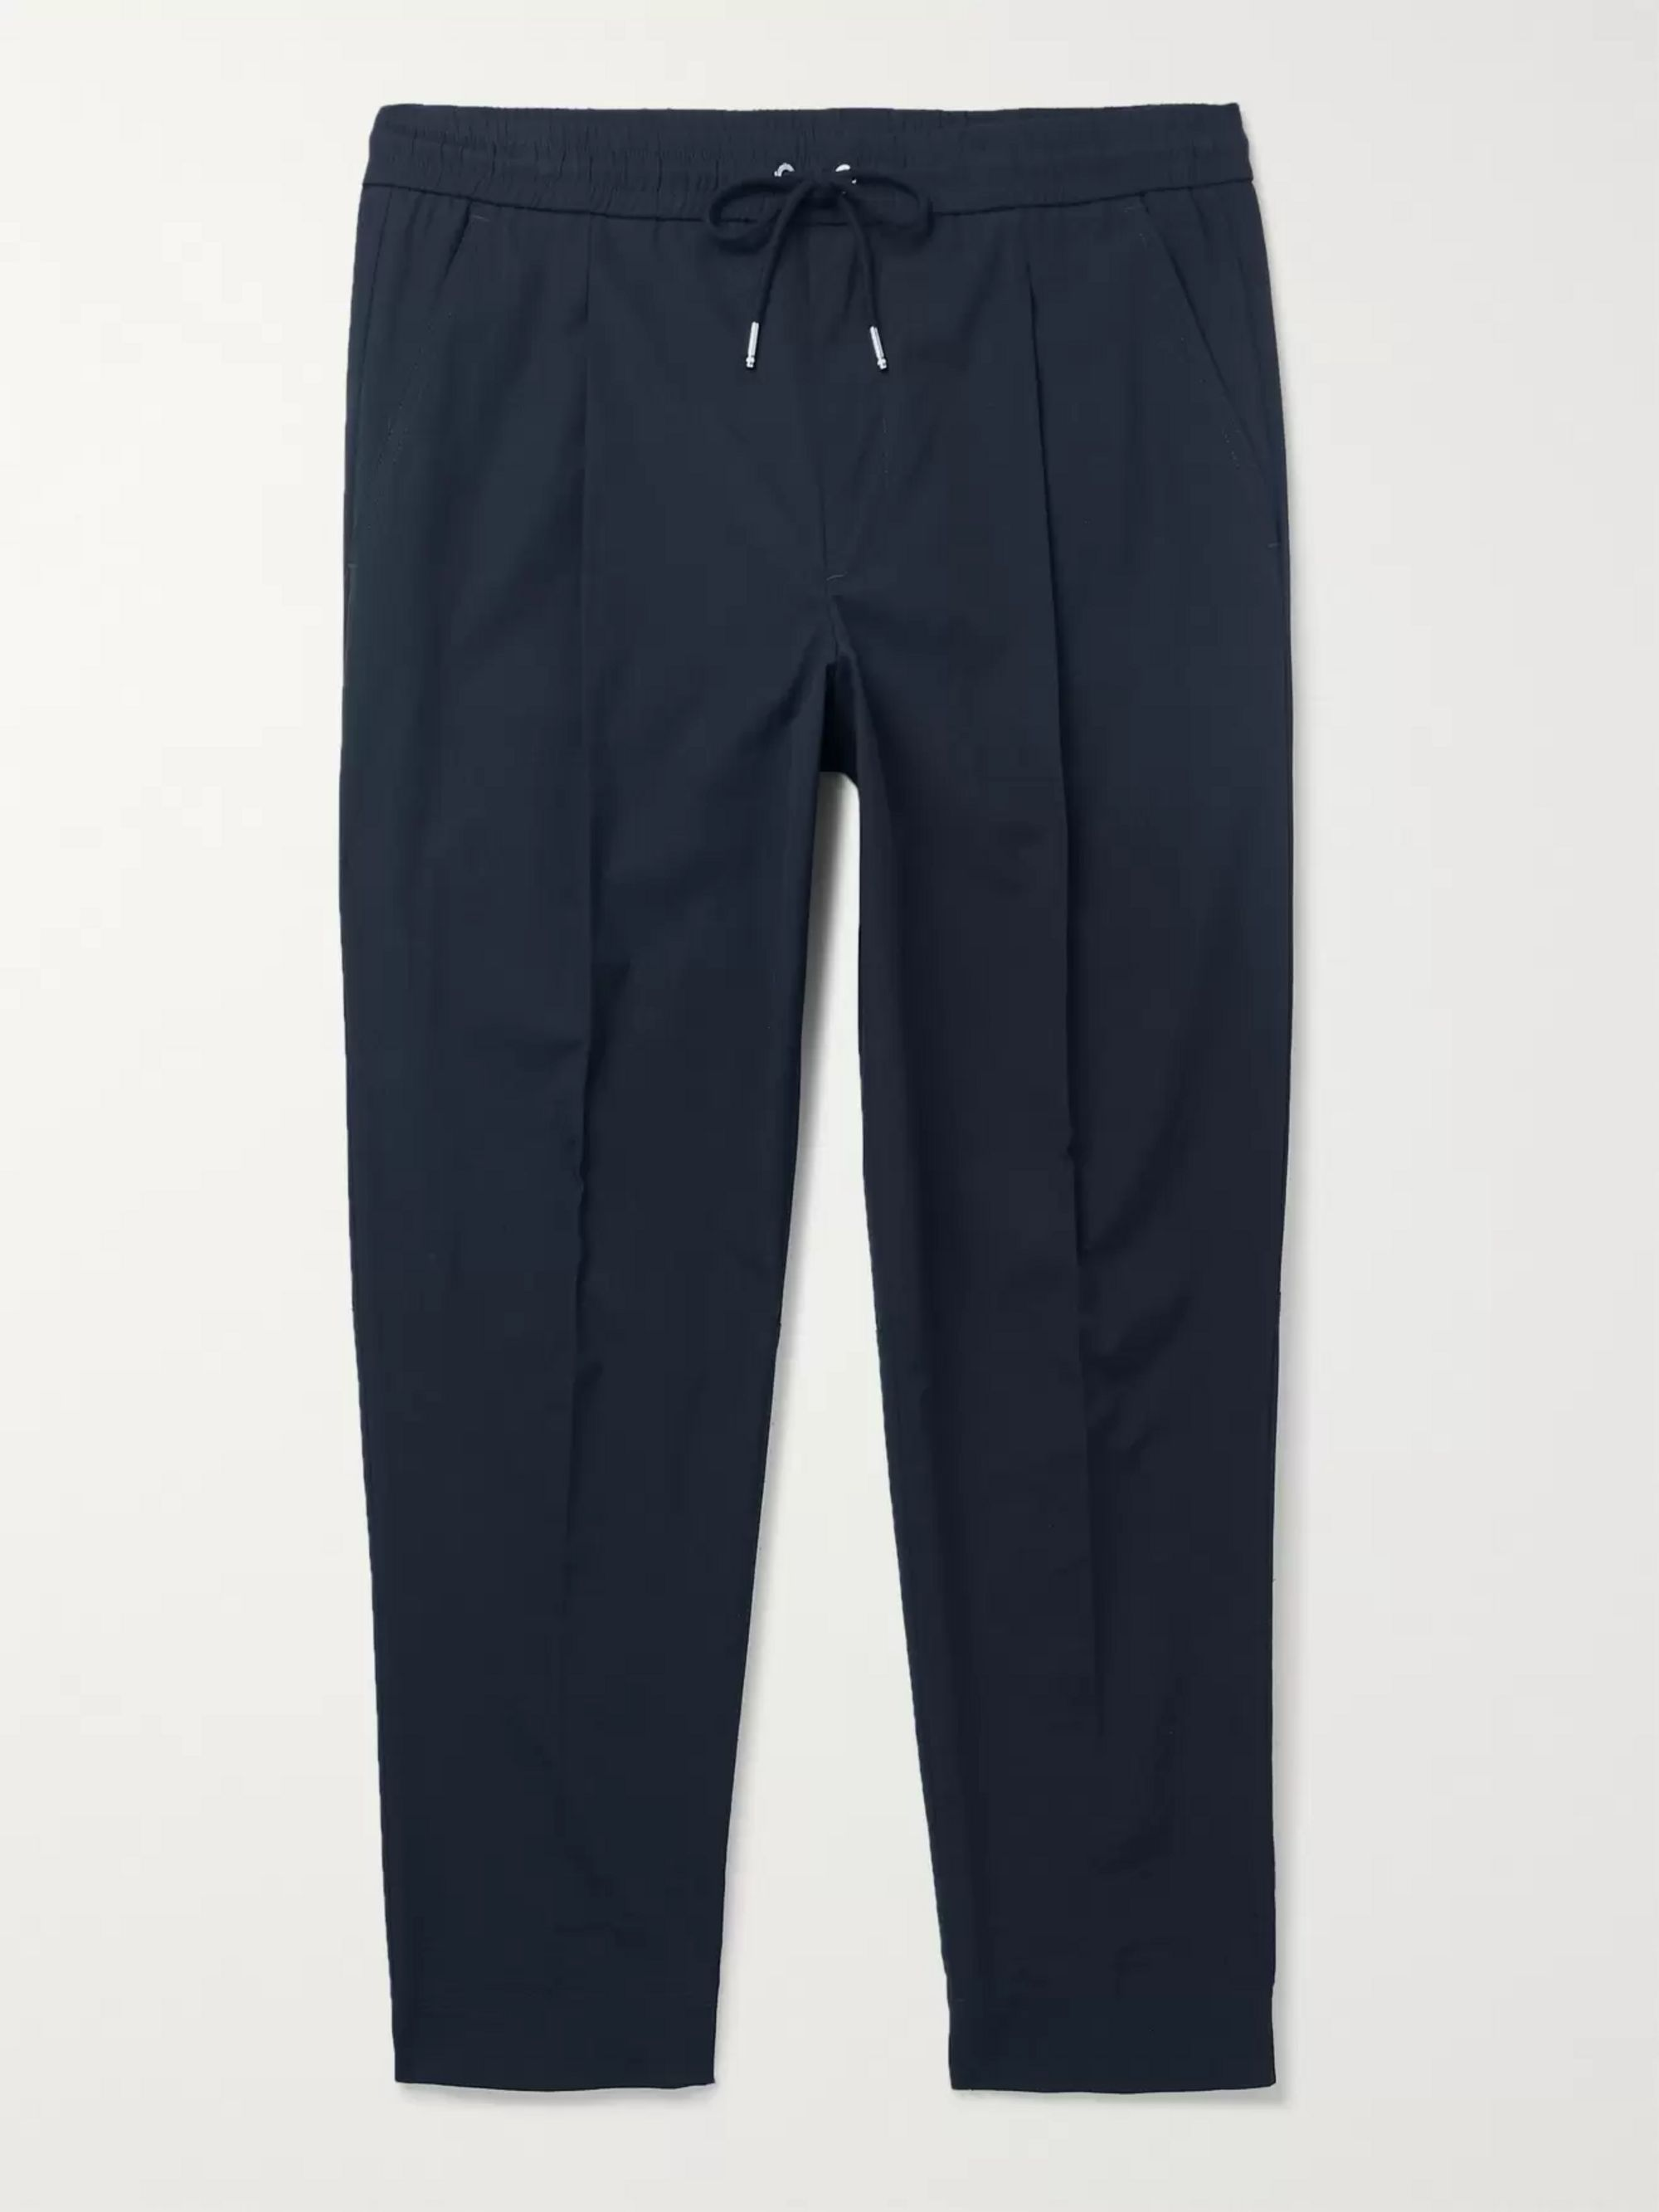 Moncler Tapered Pleated Stretch-Cotton Drawstring Trousers